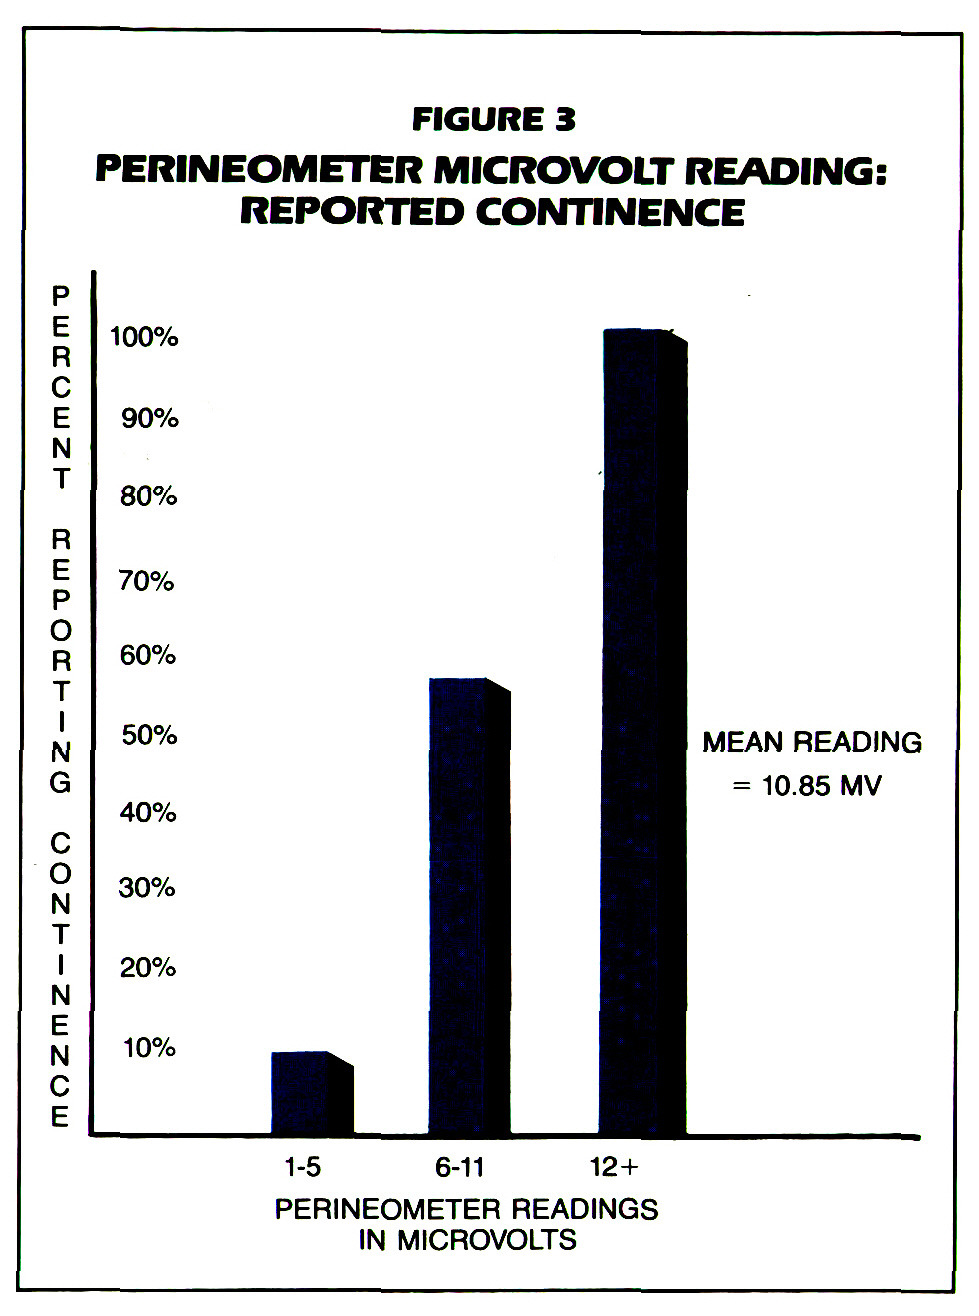 FIGURE 3PERINEOMETER MICROVOLT READING: REPORTED CONTINENCE